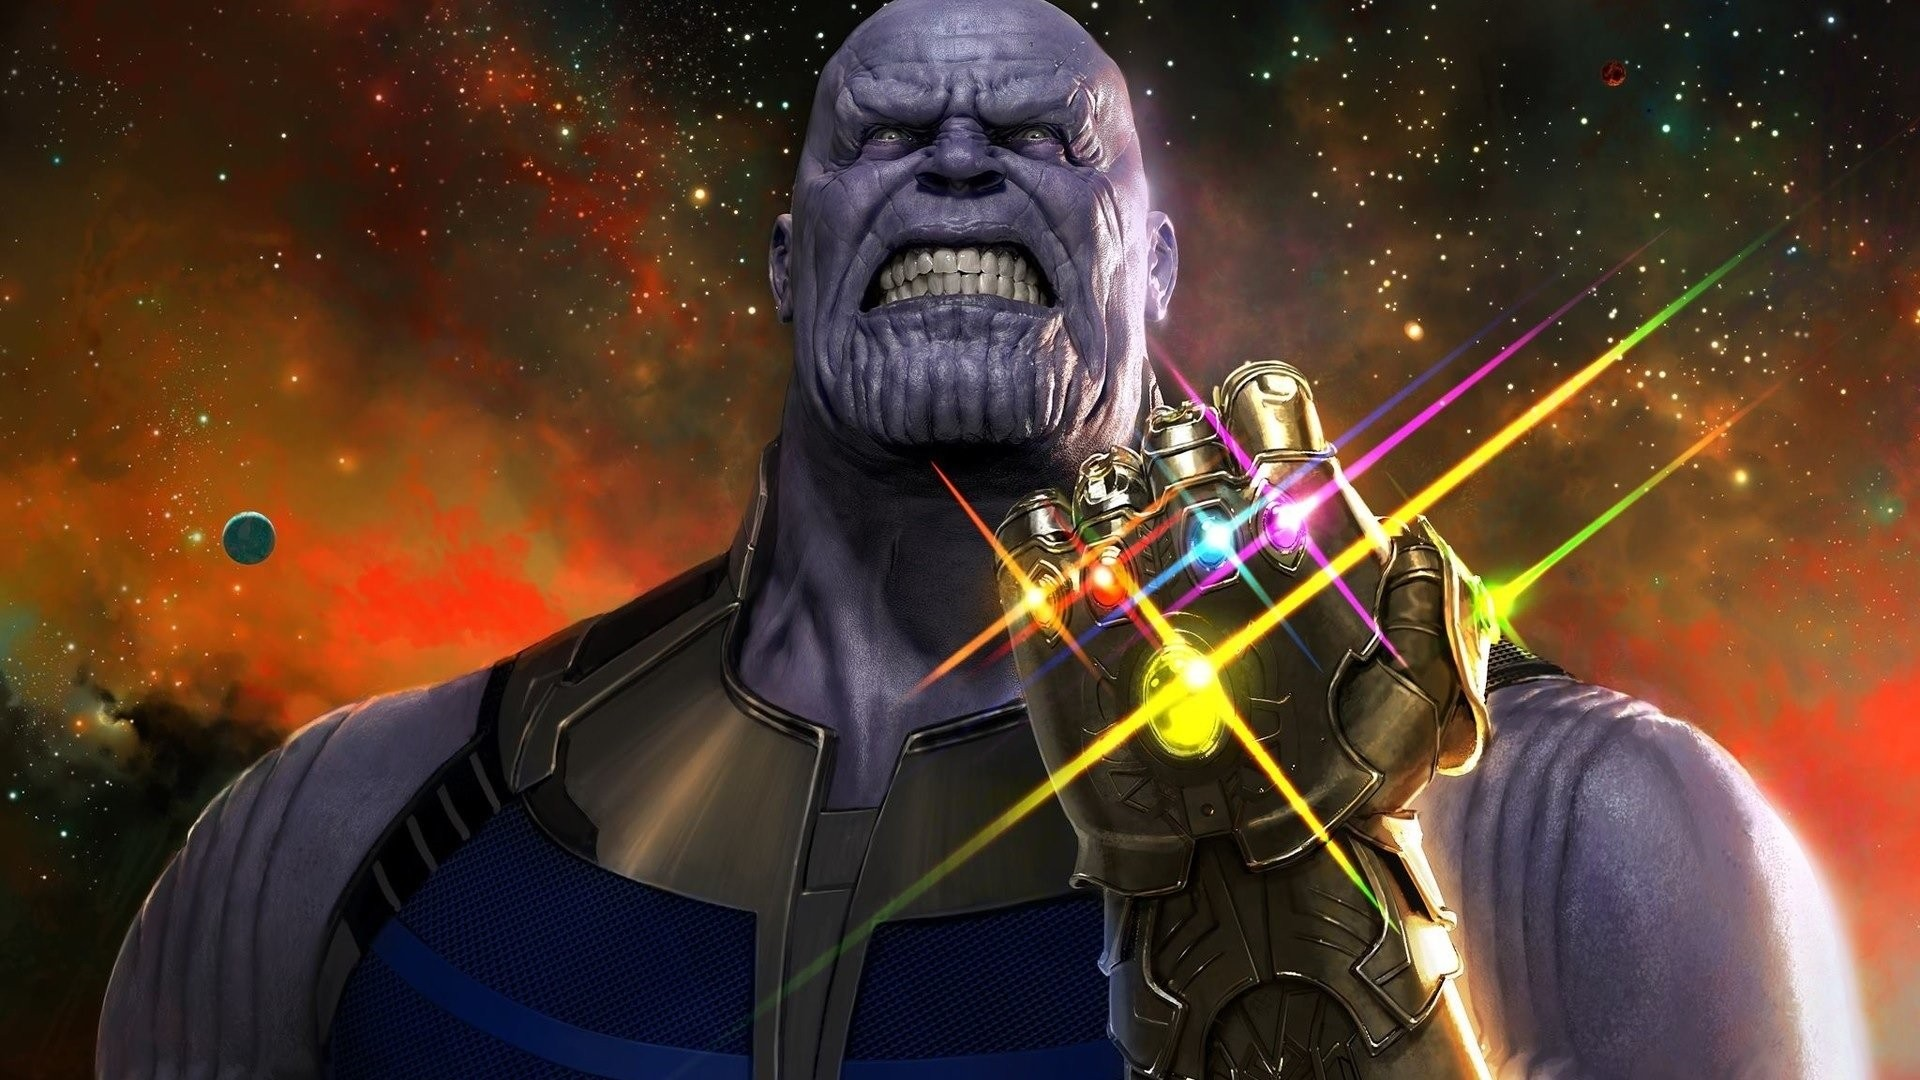 Thanos hd wallpaper download